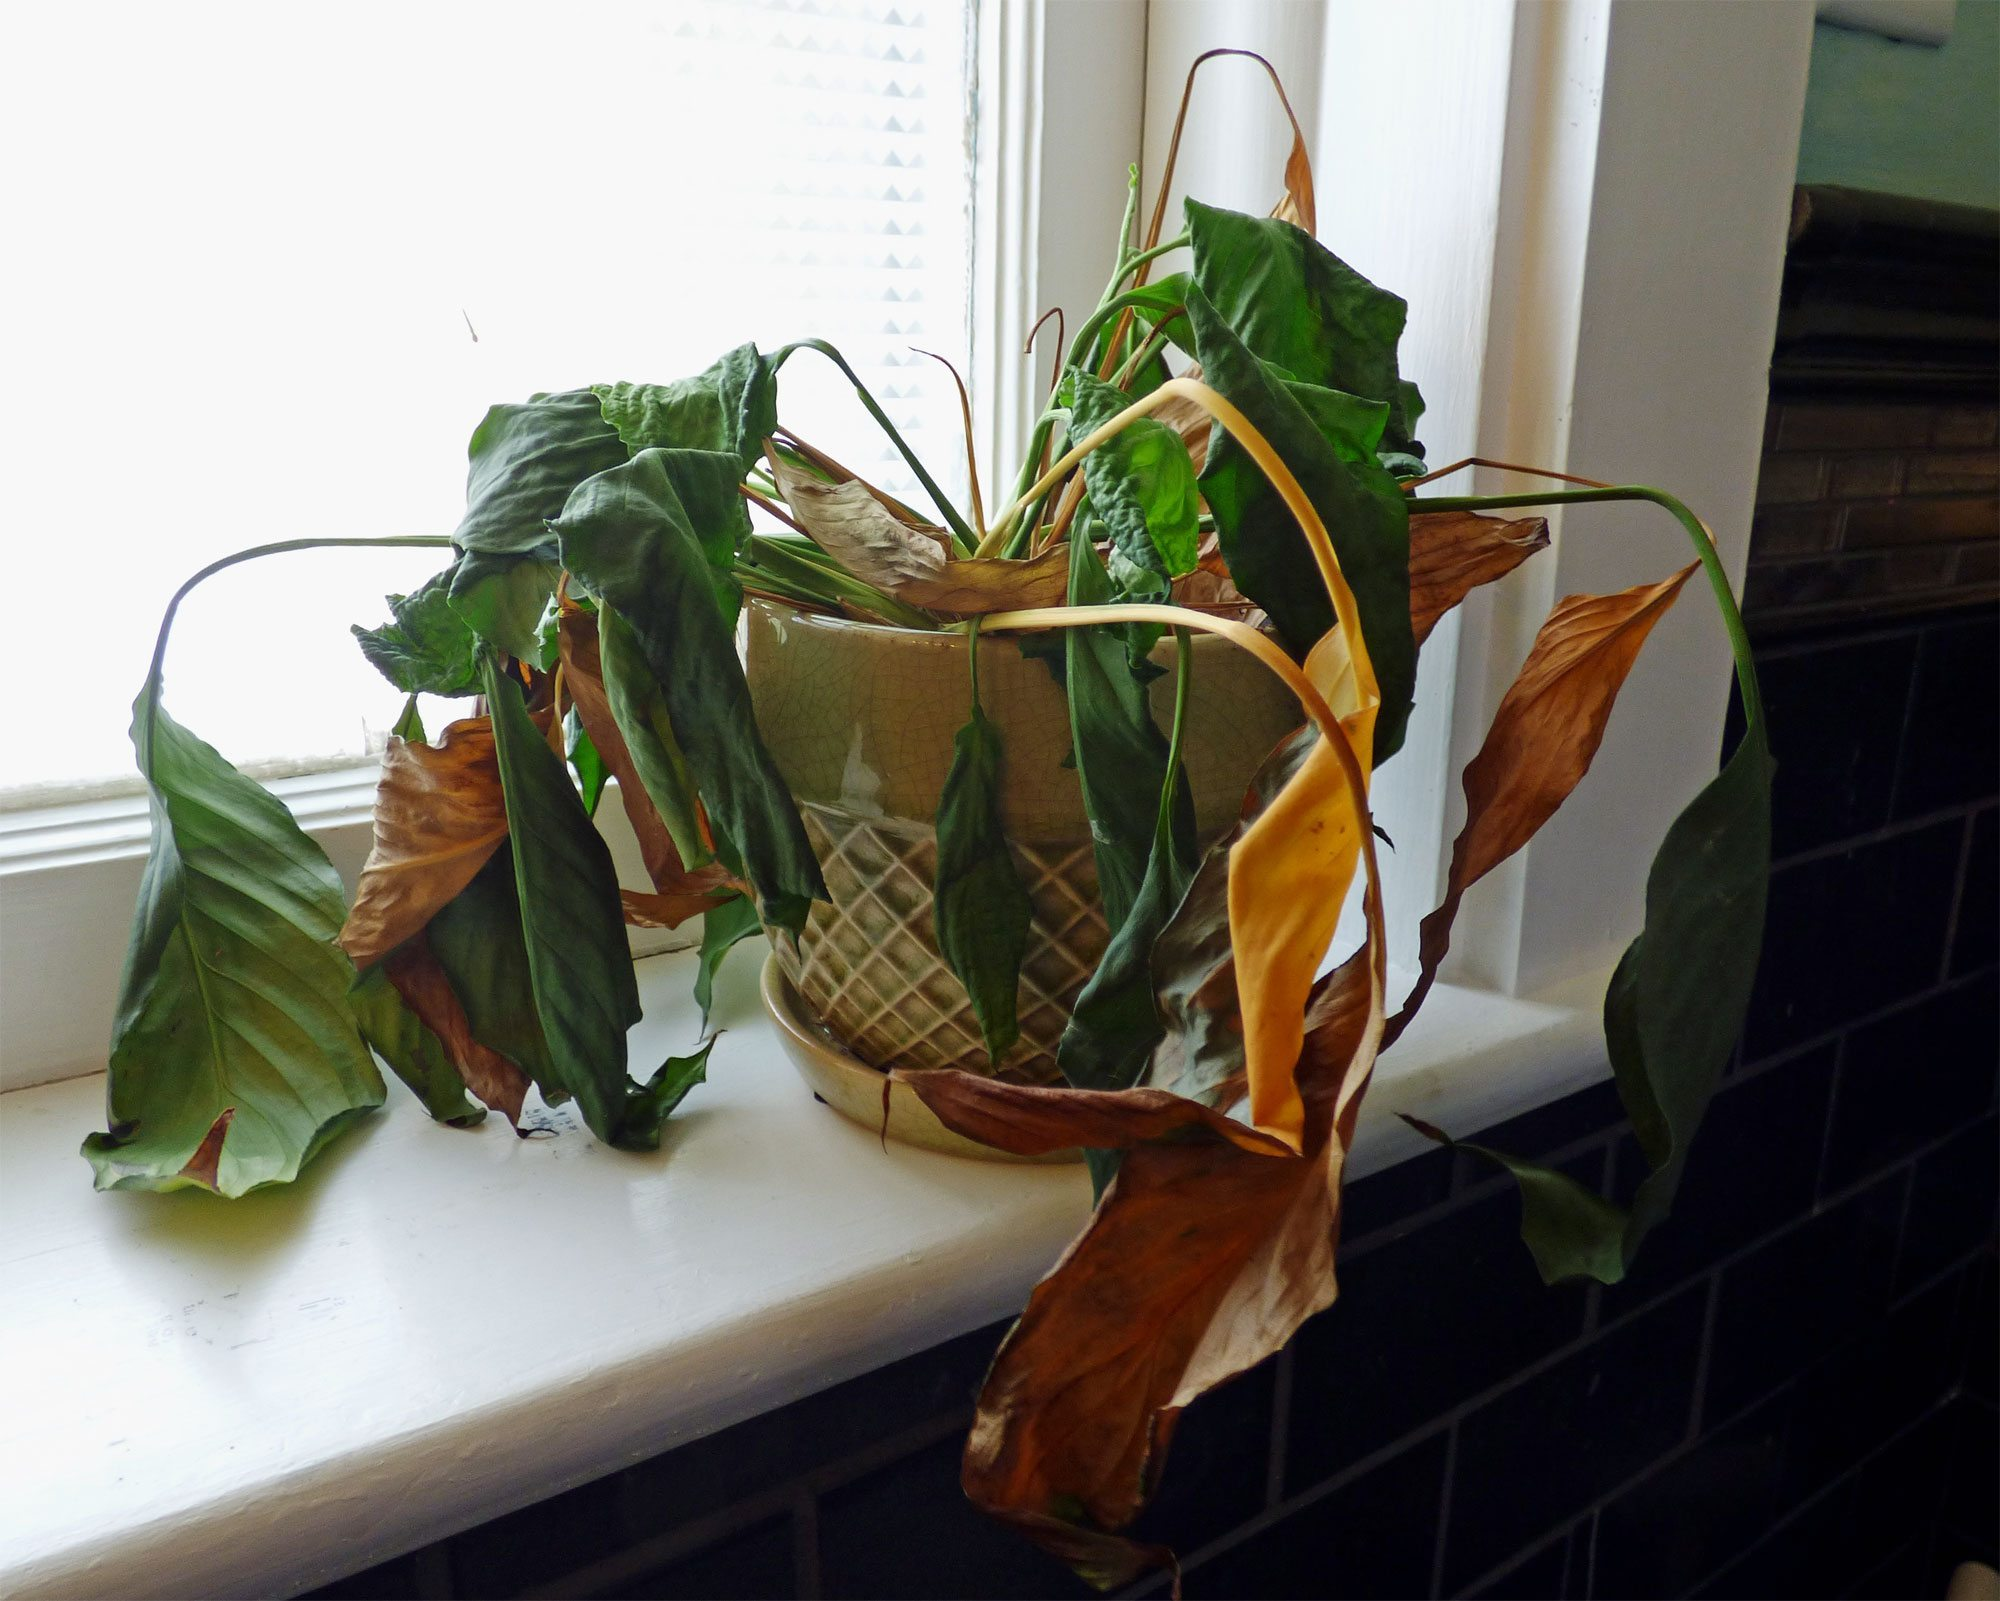 Dying Container Plants - Why A Plant May Suddenly Die